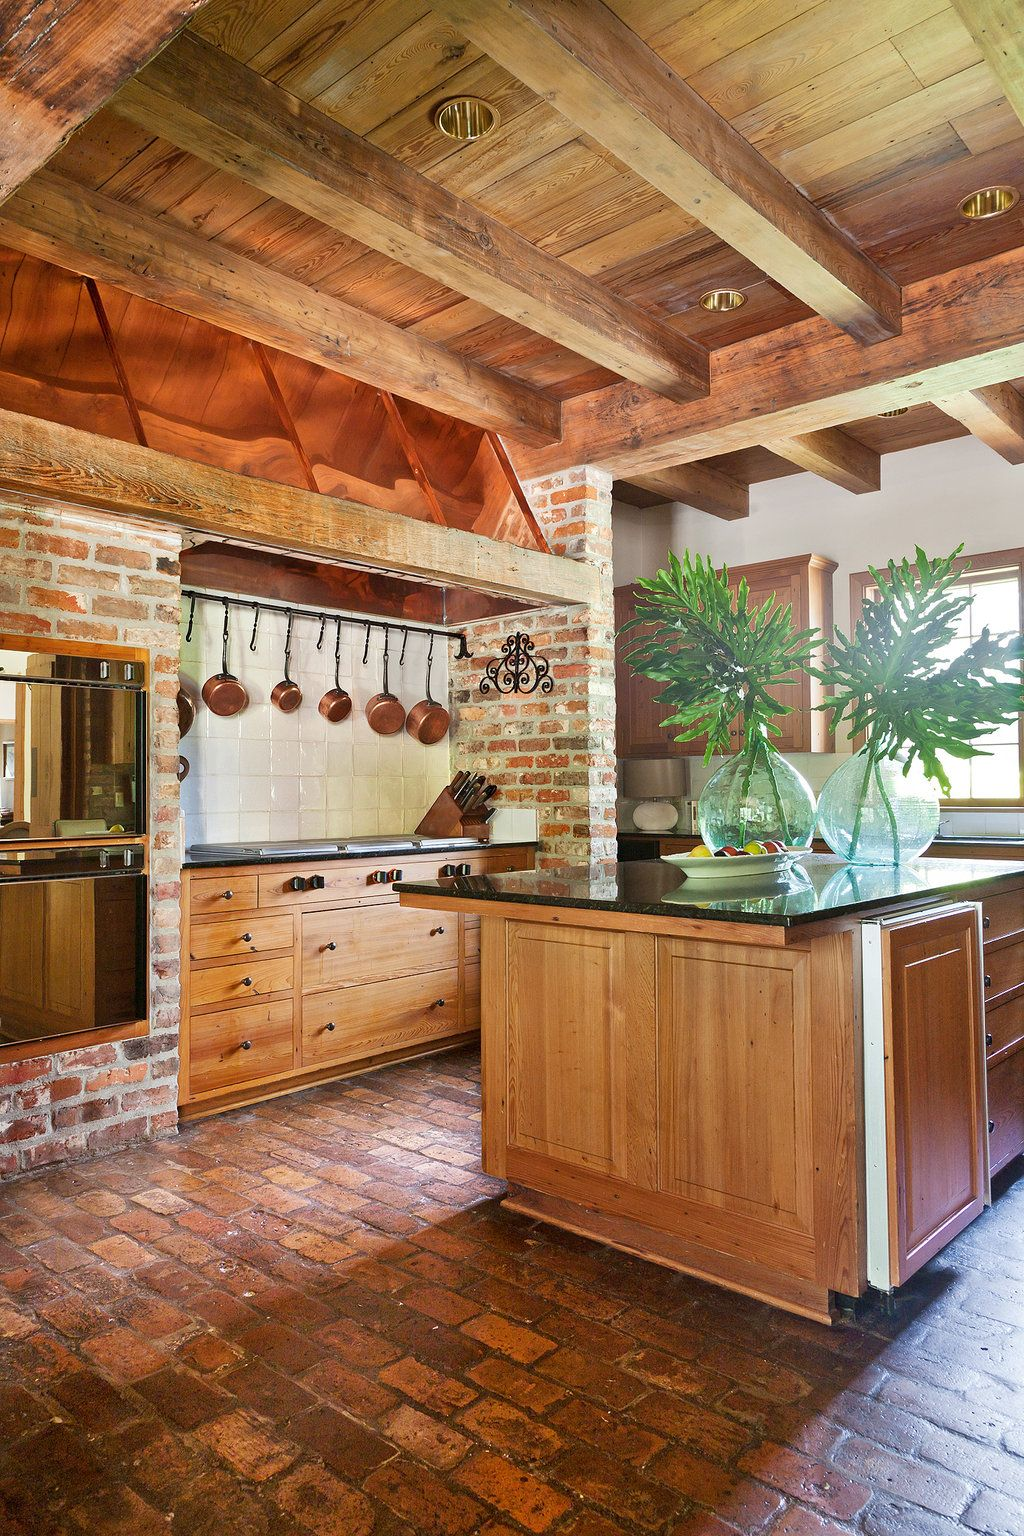 Reclaimed Wood Kitchen Cabinets Homes For 3 Million Brick Flooring Beams And Bricks